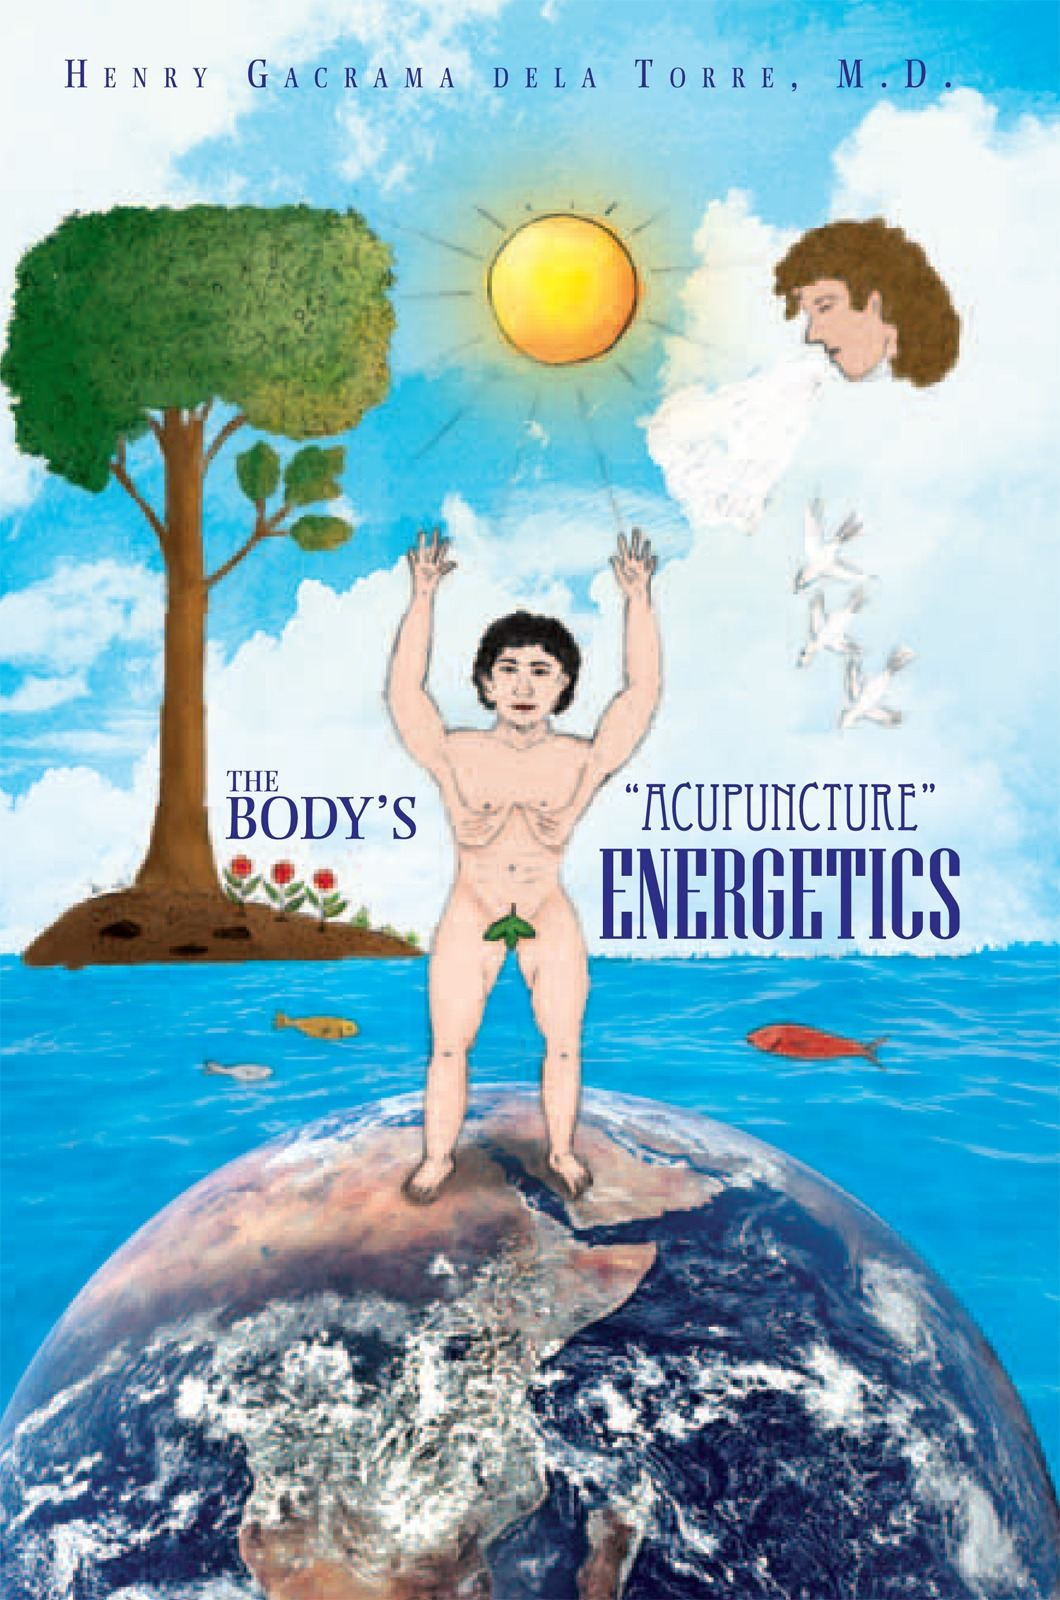 The Body's ''Acupuncture'' Energetics